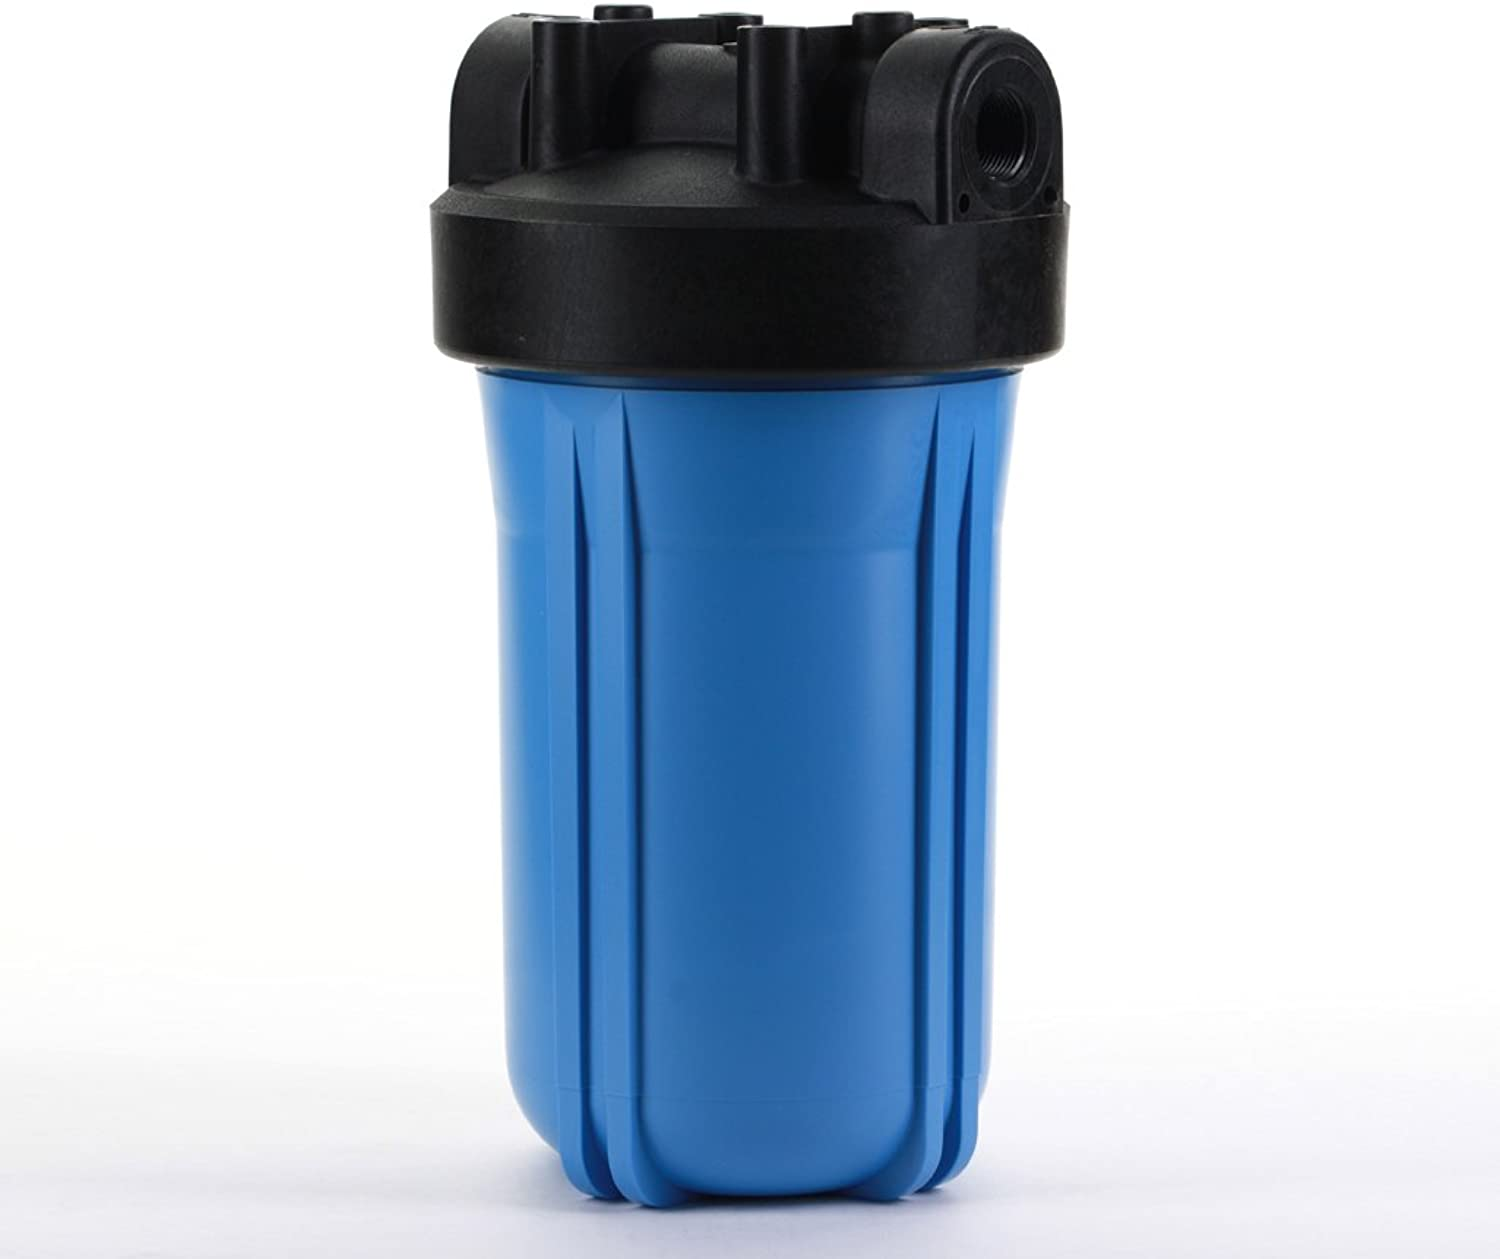 Hydronix HX-HF45-10BLBK34 Water Filter Housing Nsf Listed 10  Big bluee Size-3 4  Ports, bluee Black